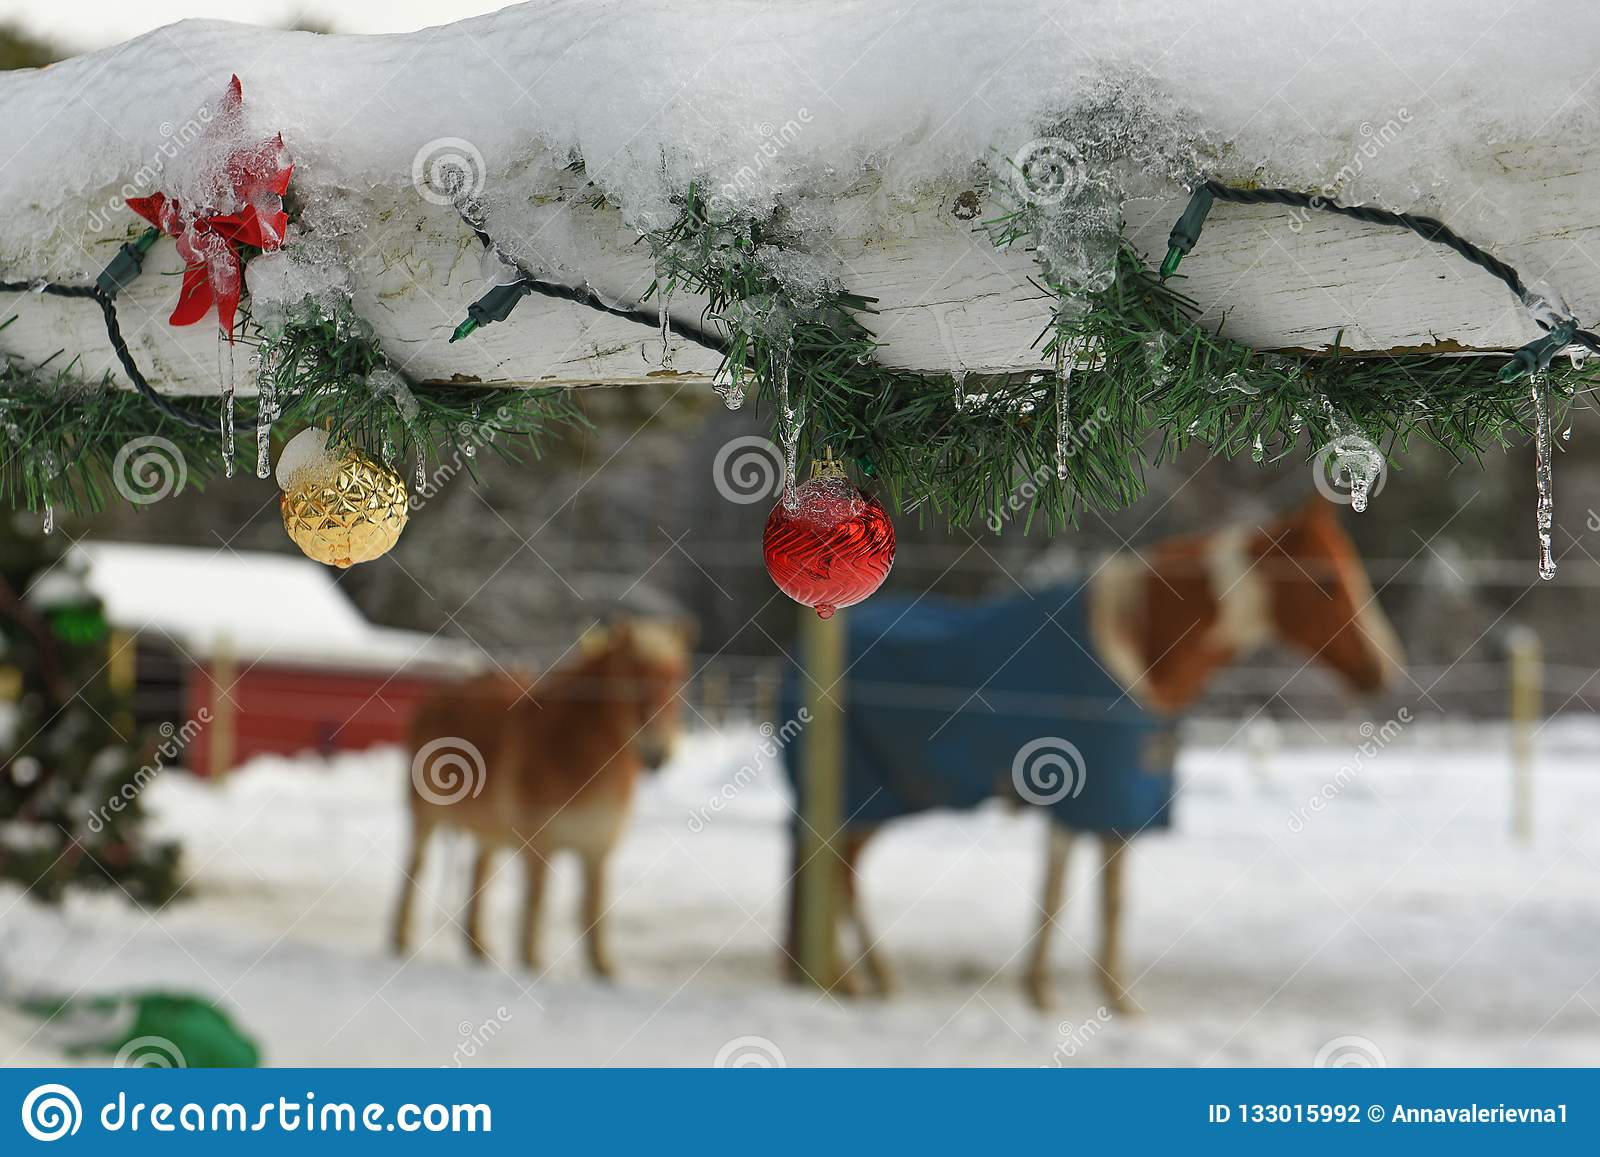 A Wooden Fence On A Farm Decorated With New Year S Christmas Toys And Garlands And Horses Stock Photo Image Of Tree Cold 133015992